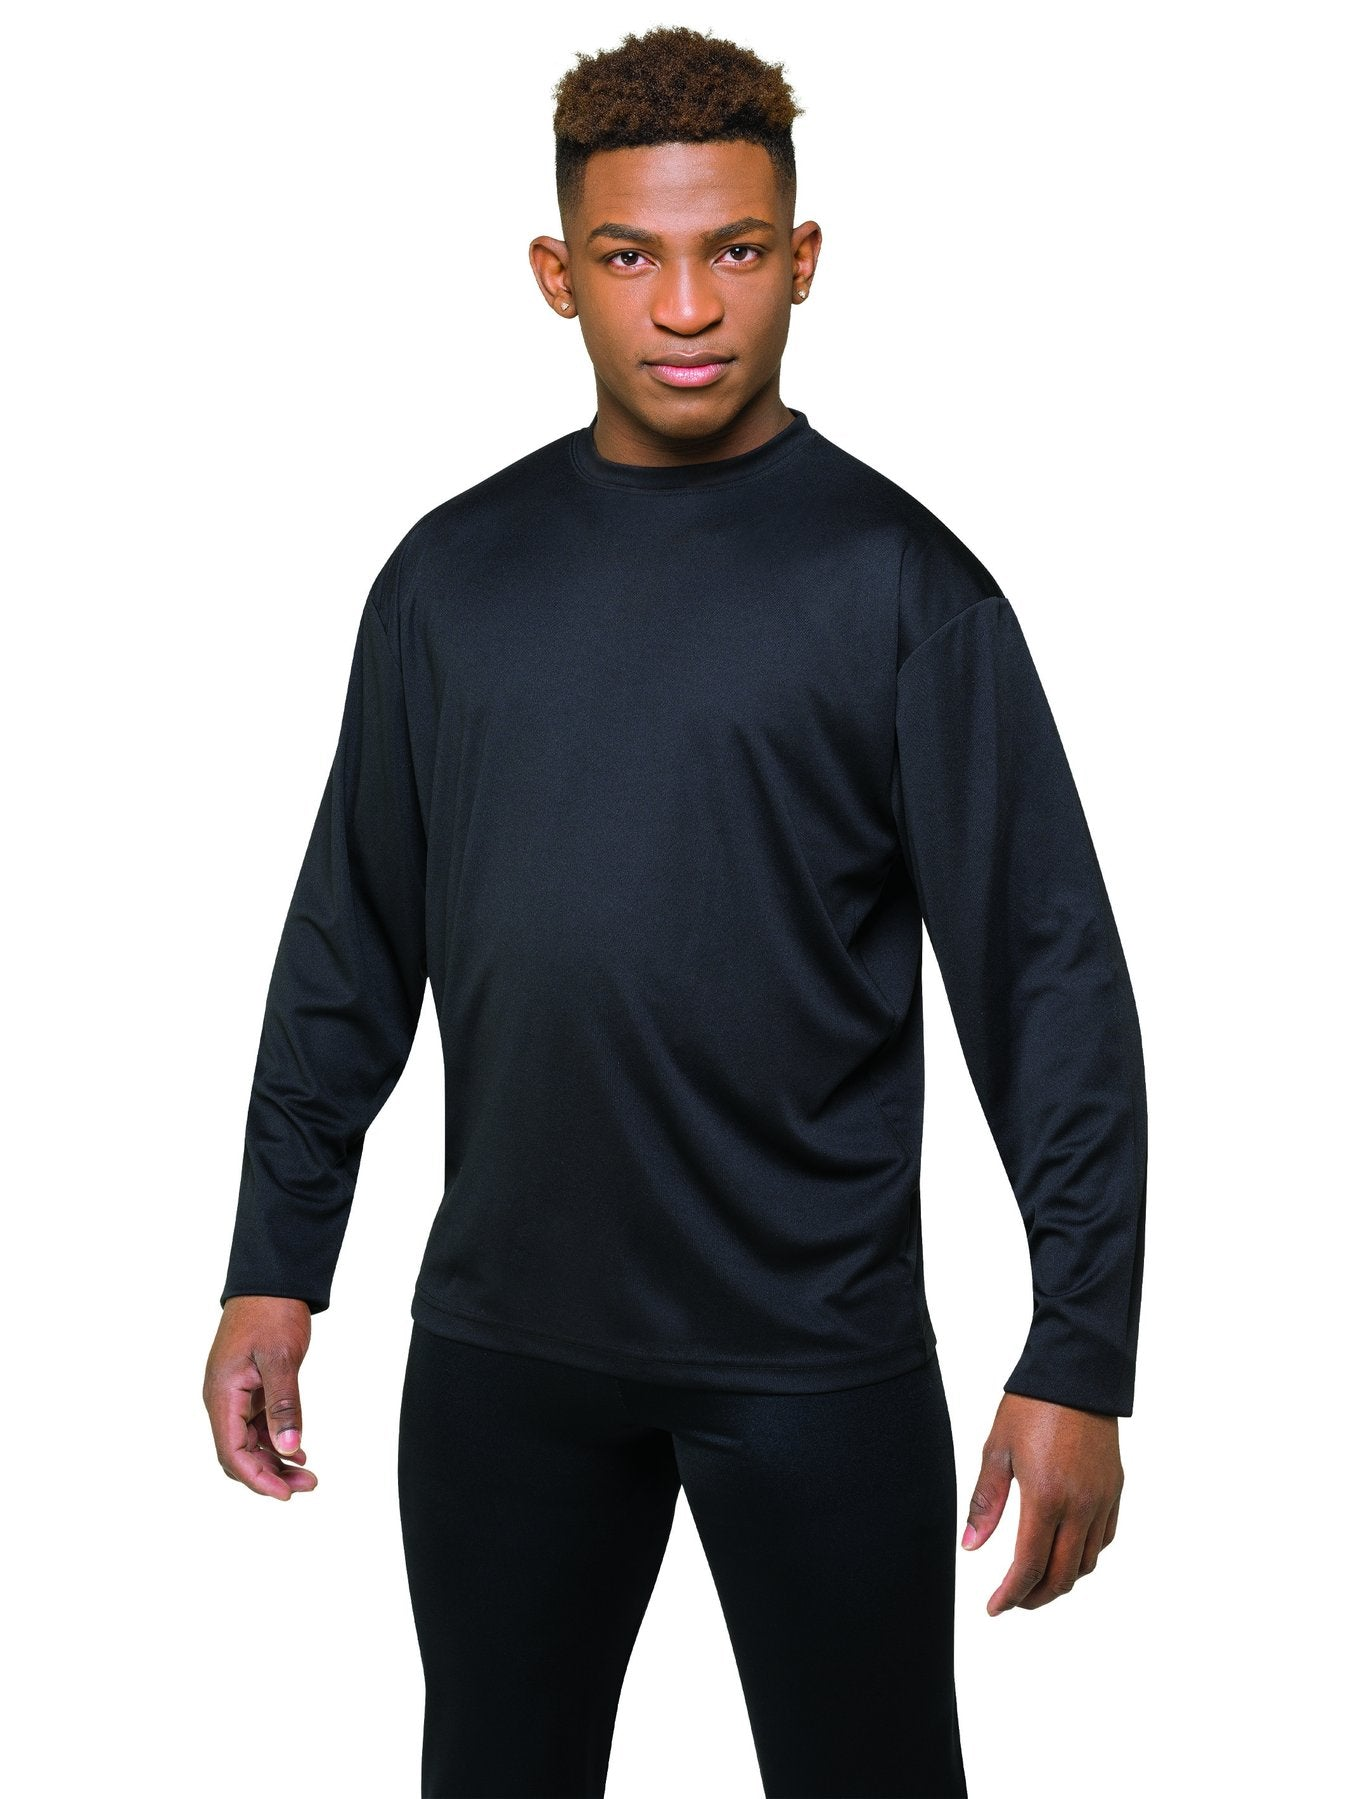 Corelements Relaxed Fit Long Sleeve Shirt